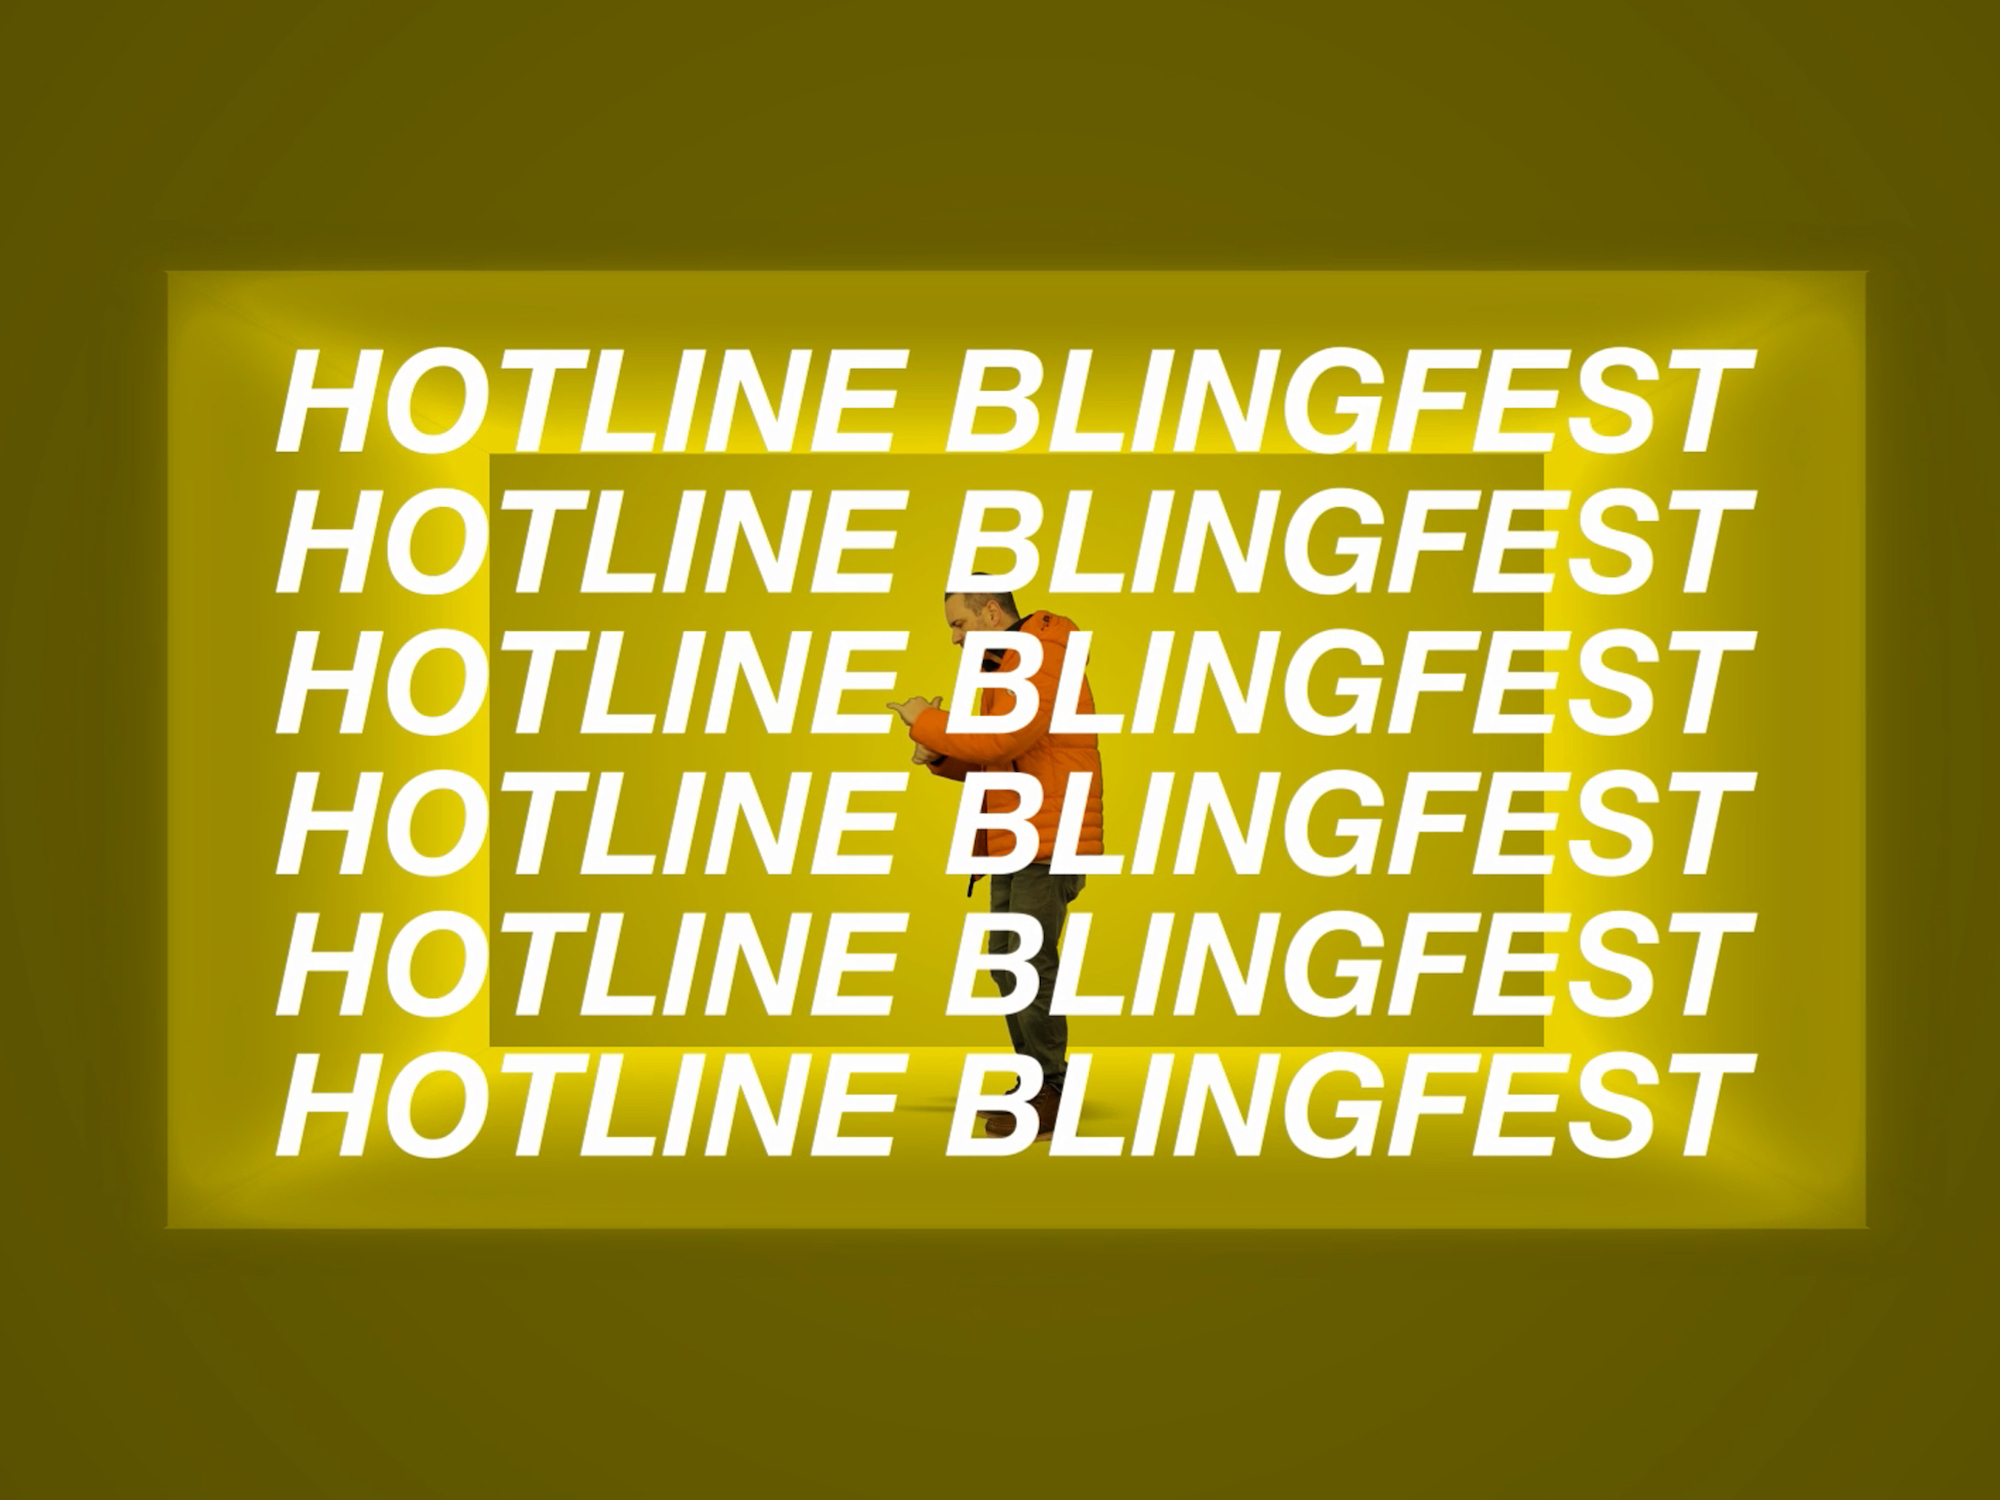 Parody of the Hotline Bling video, which is a still image in dark yellow with the words Hotline Blingfest multiple times over the top of it, and an image of a man in the background wearing a puffy orange jacket